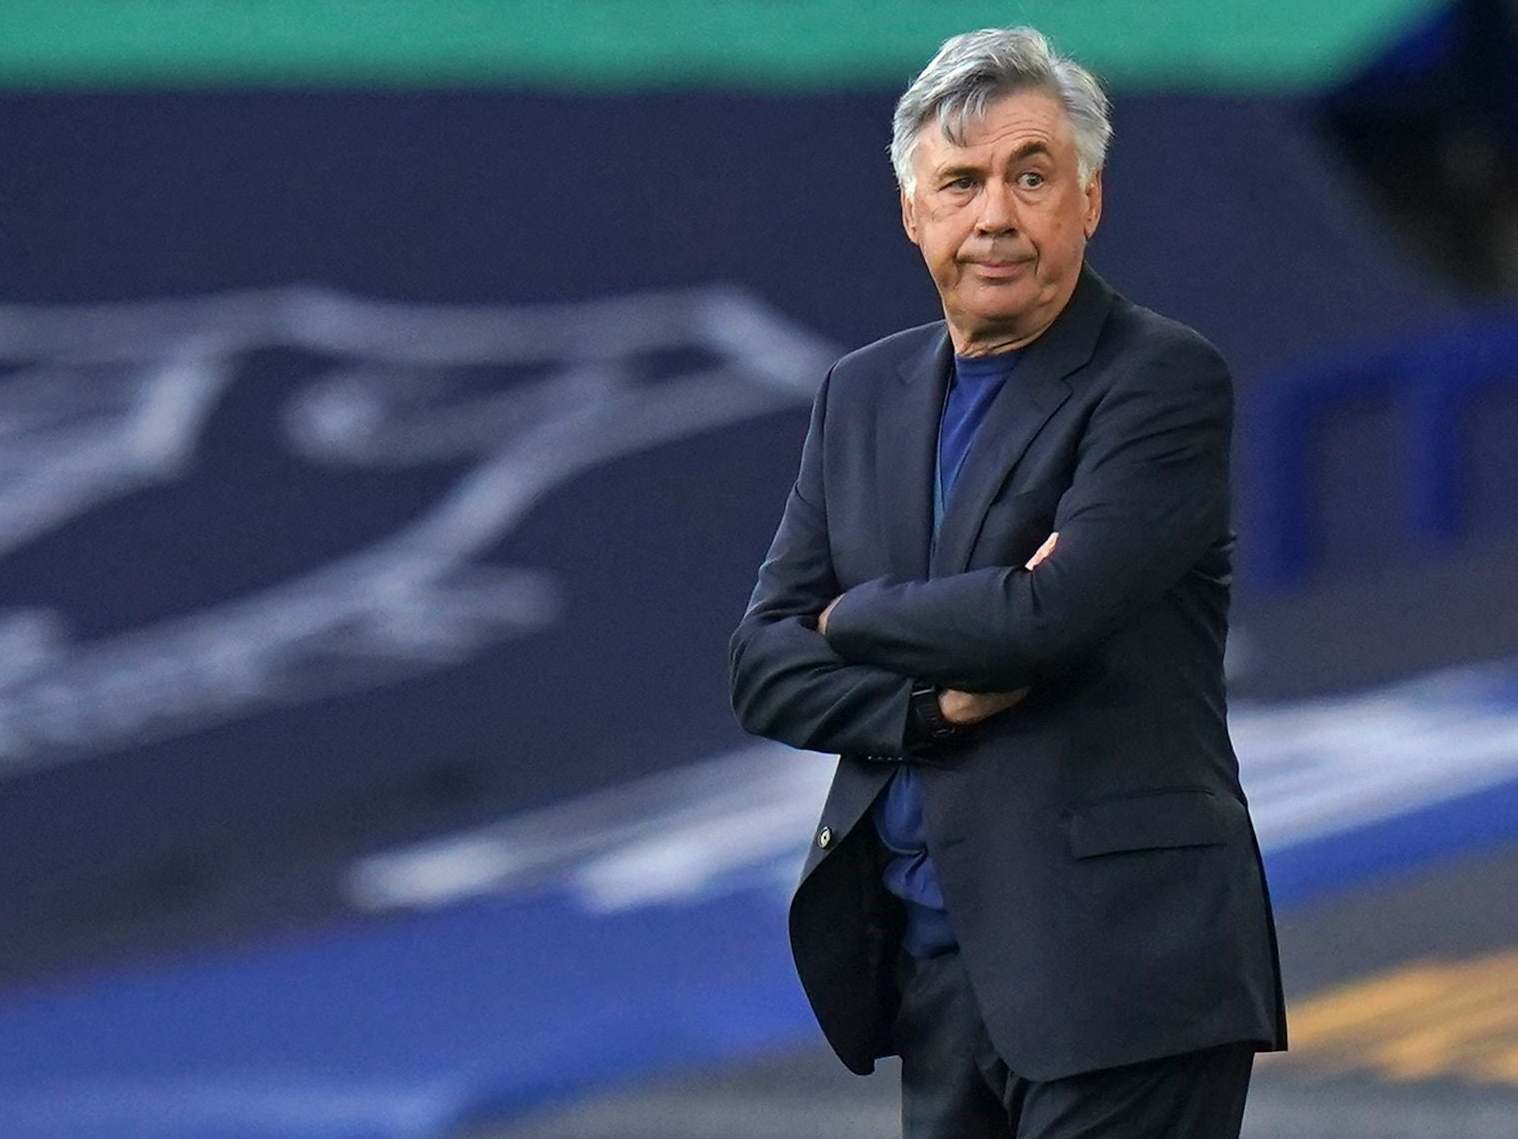 Everton manager Carlo Ancelotti indicted in Spain on suspicion of ...